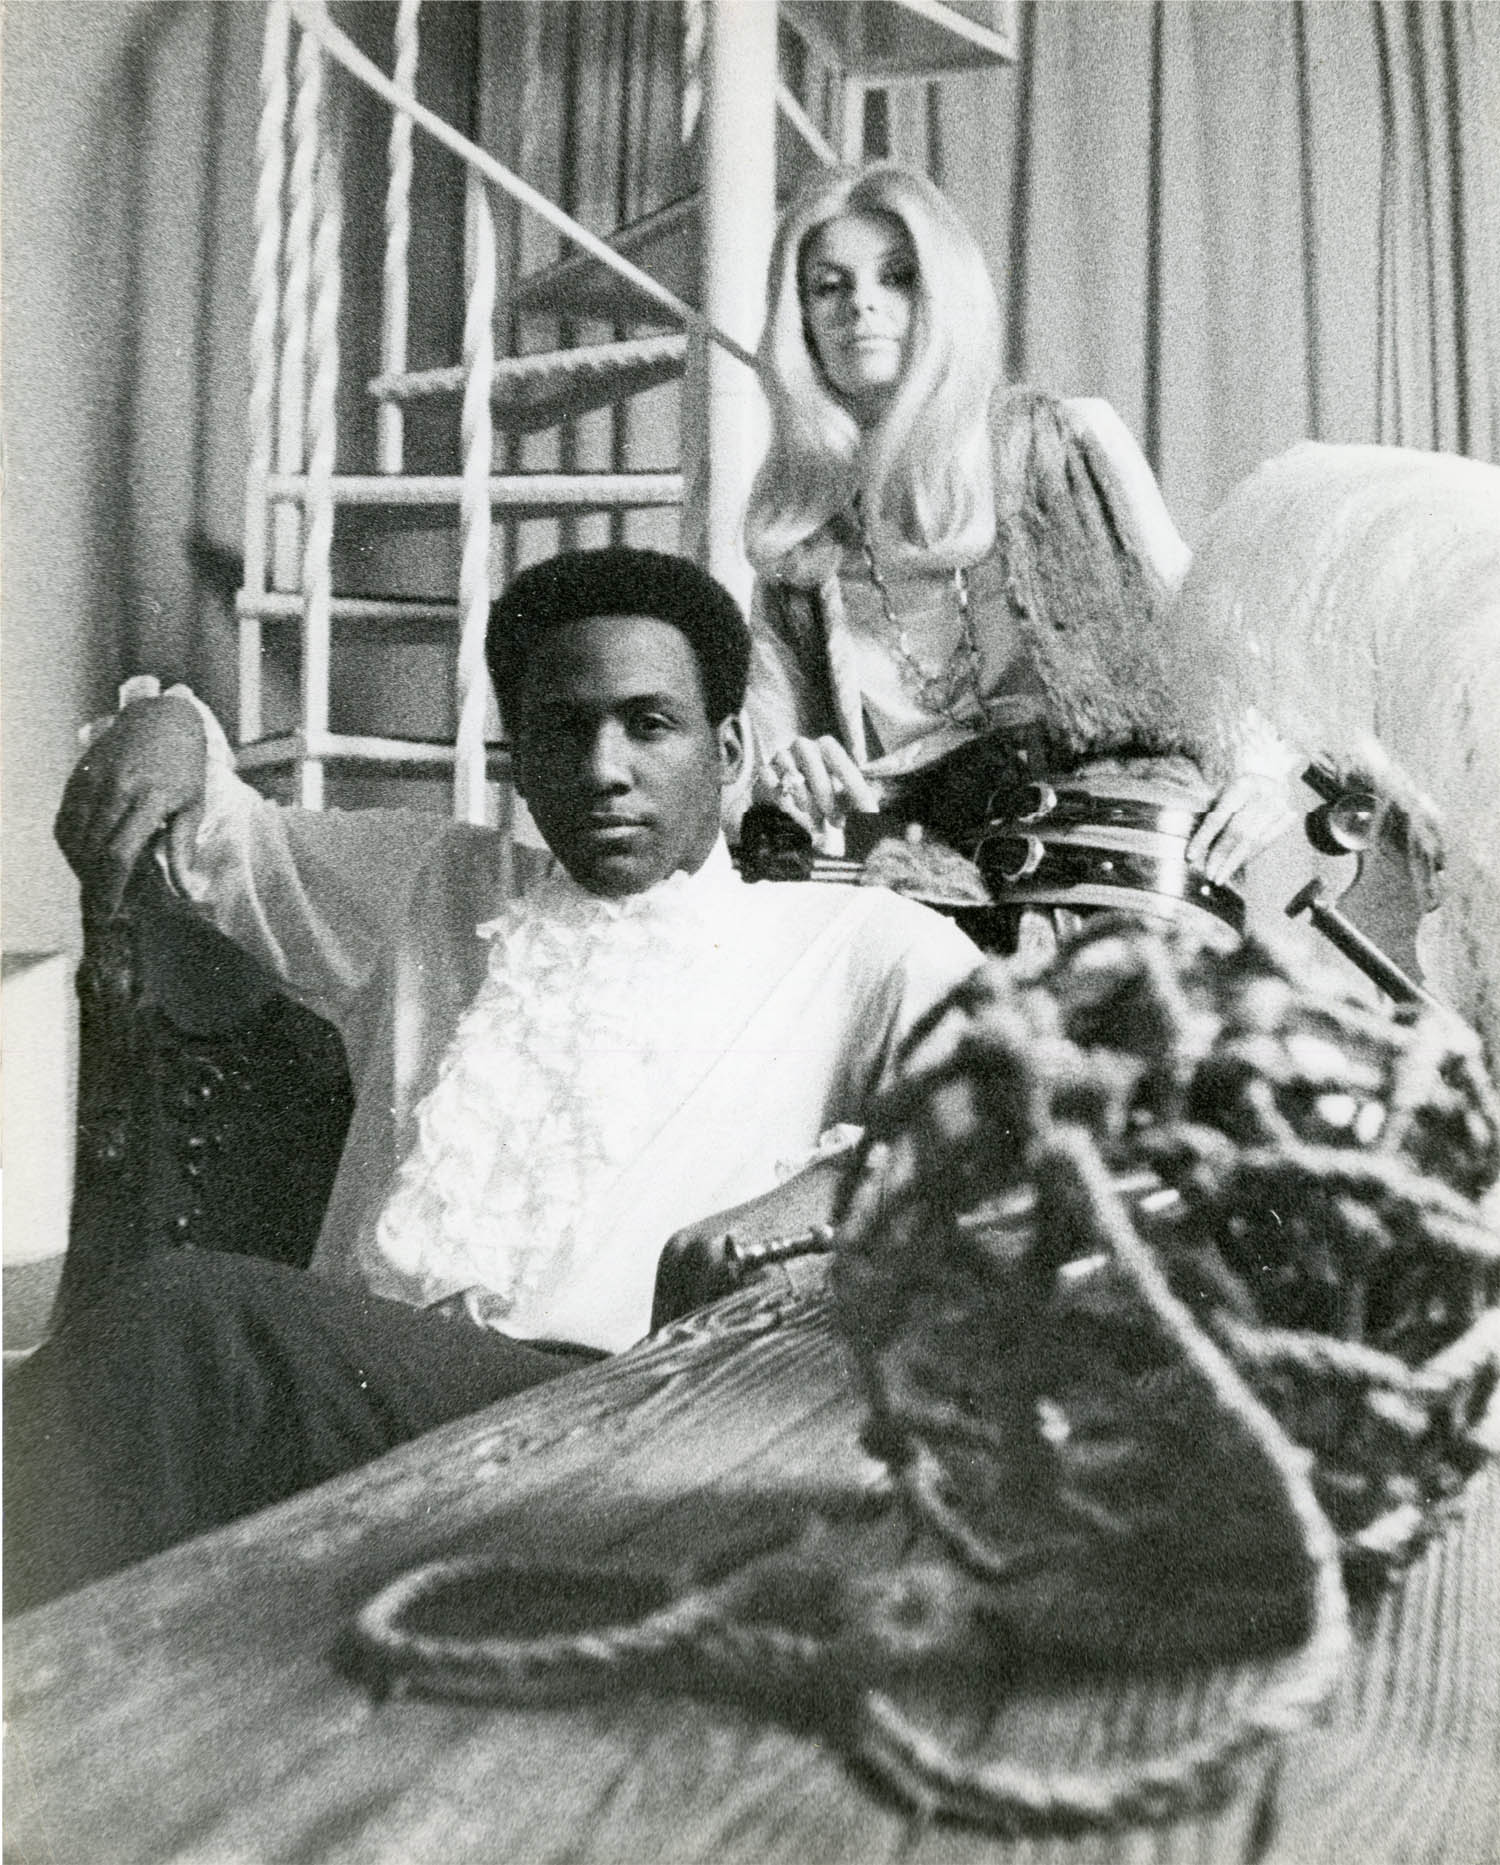 Richard Roundtree (the actor who played Shaft) and Carla, c. 1971.